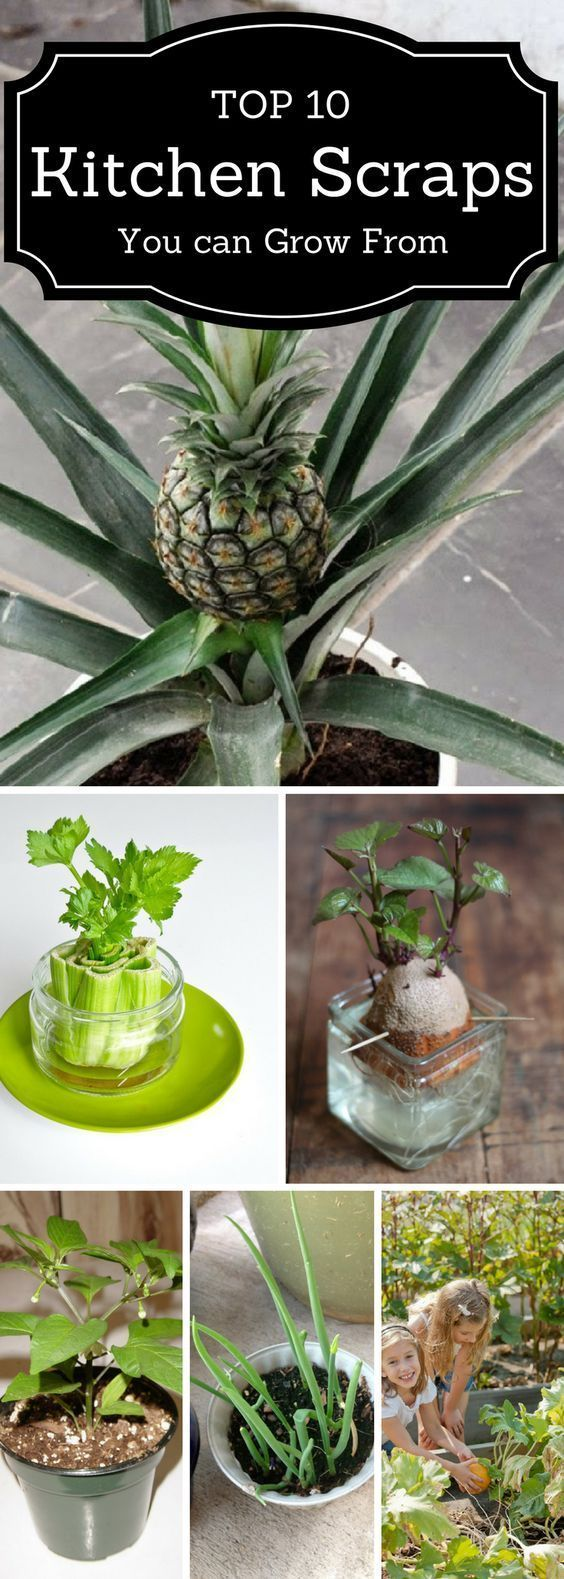 Top 10 foods that you can grow from kitchen waste